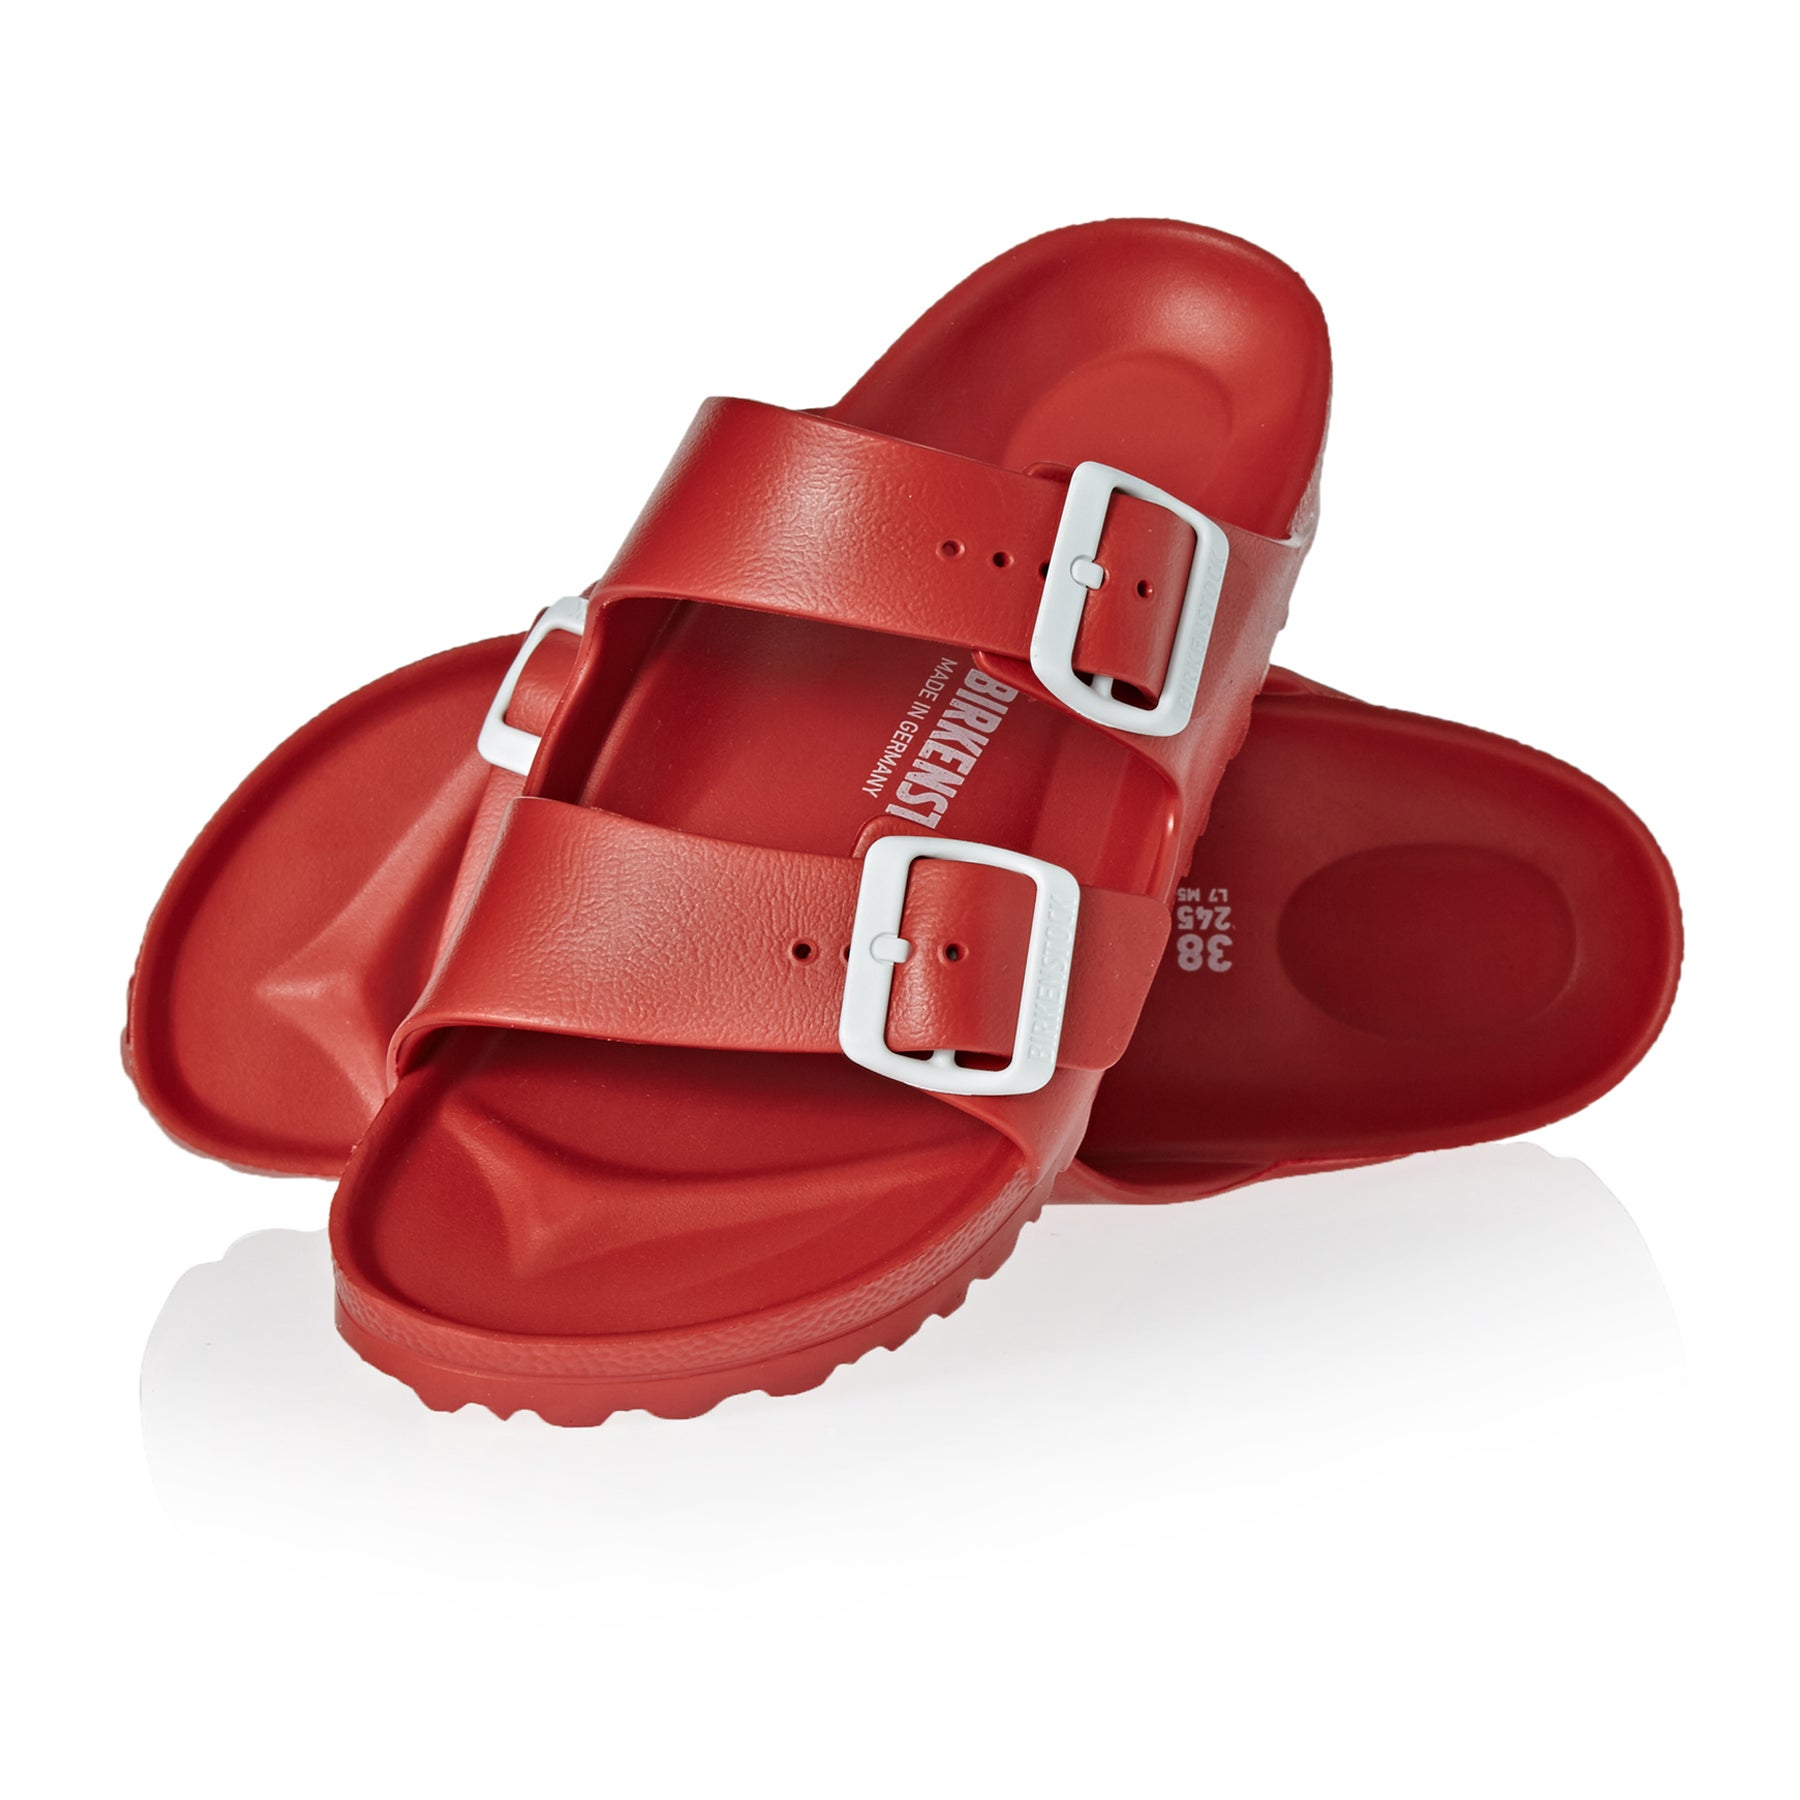 Birkenstock Arizona EVA Womens Sandals - Red